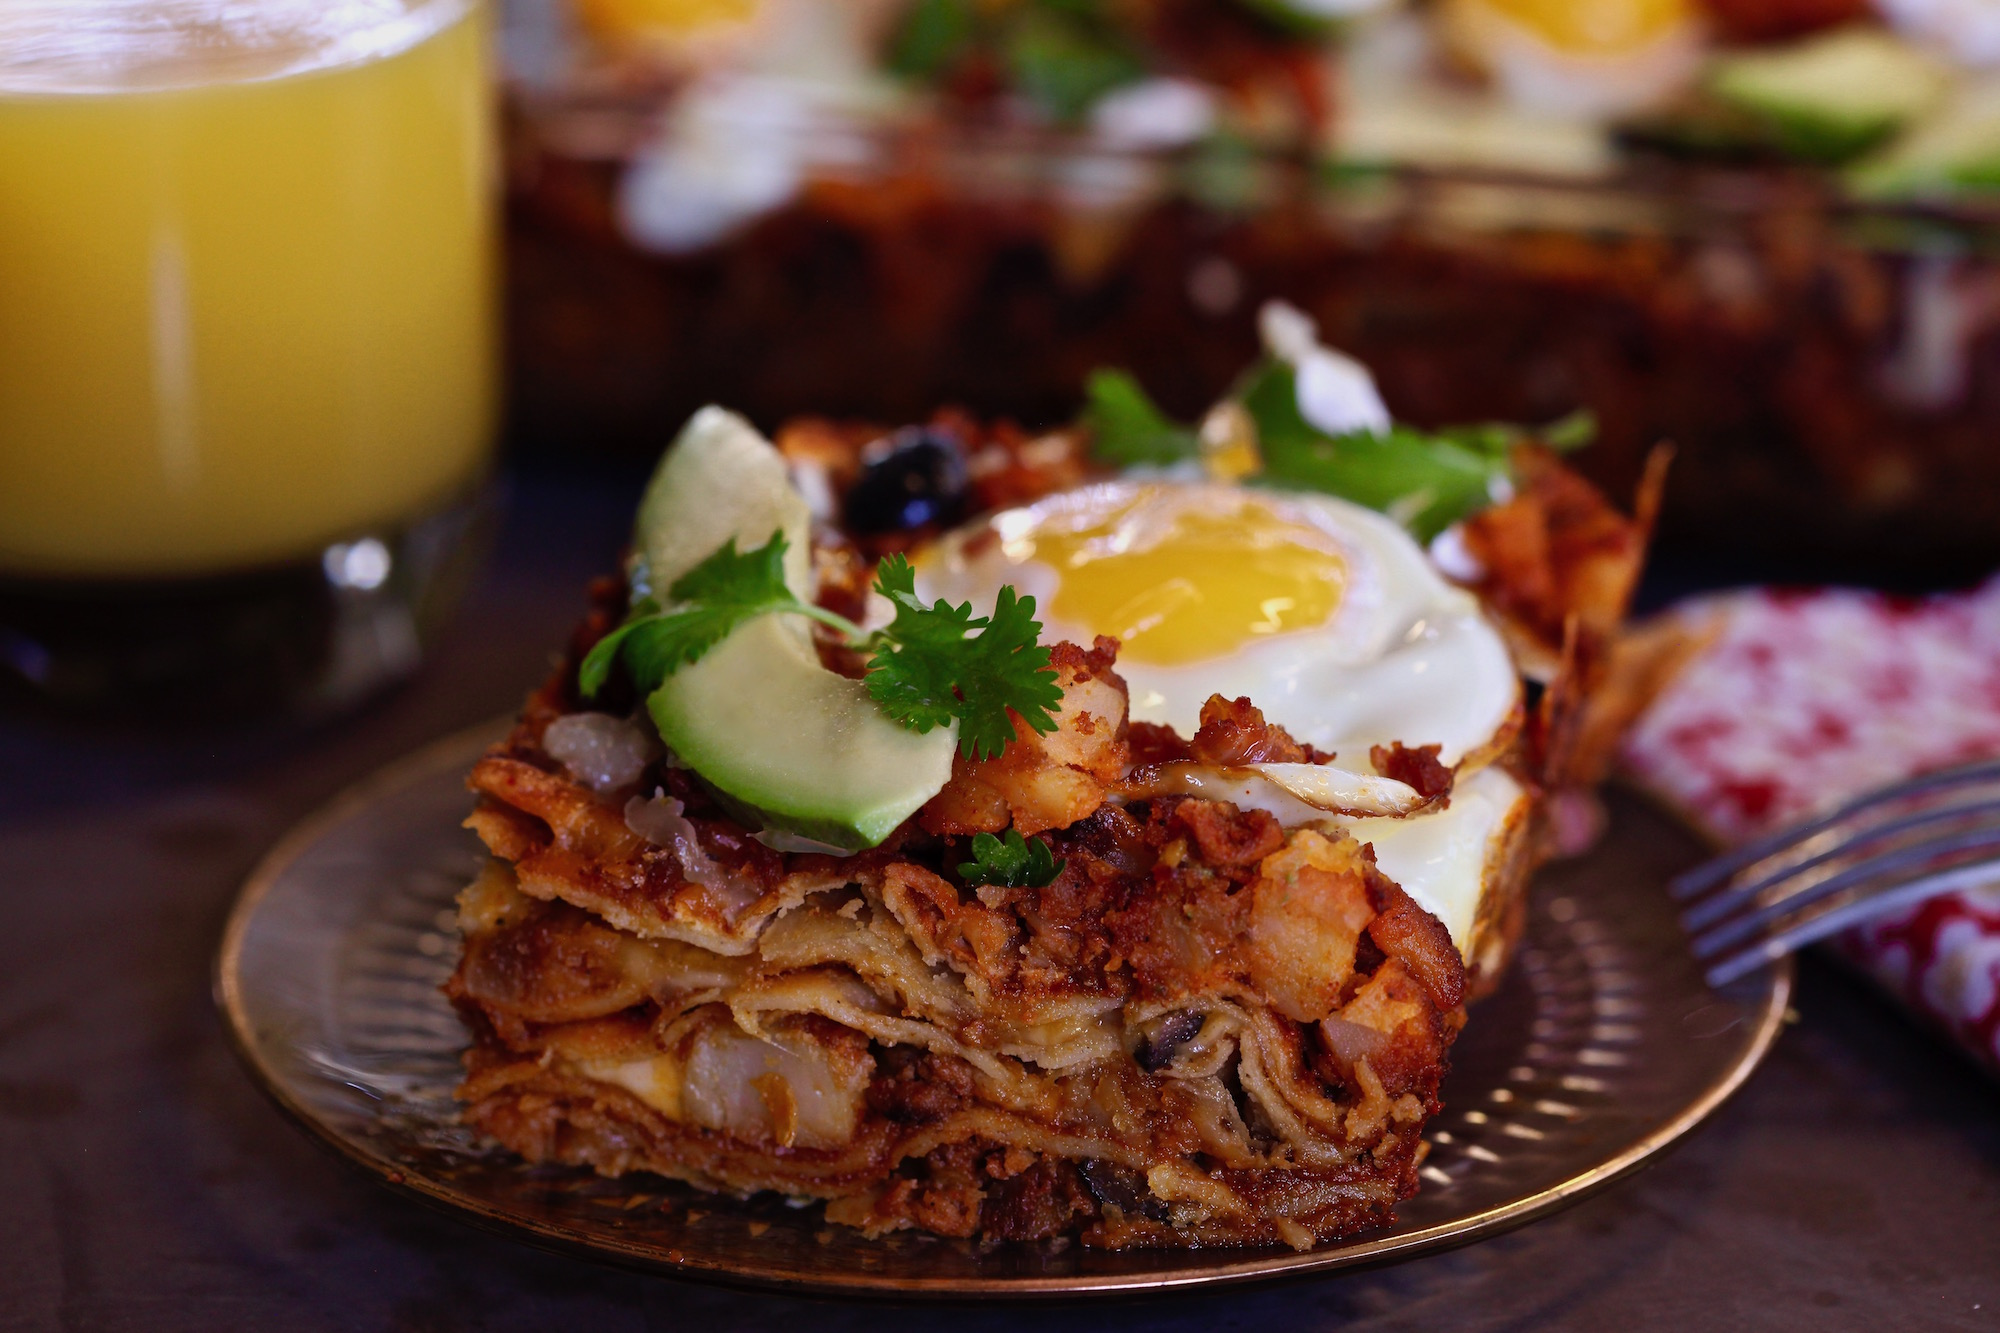 A slice of breakfast enchiladas from the tray with egg on top. All ingredients purchased at ALDI